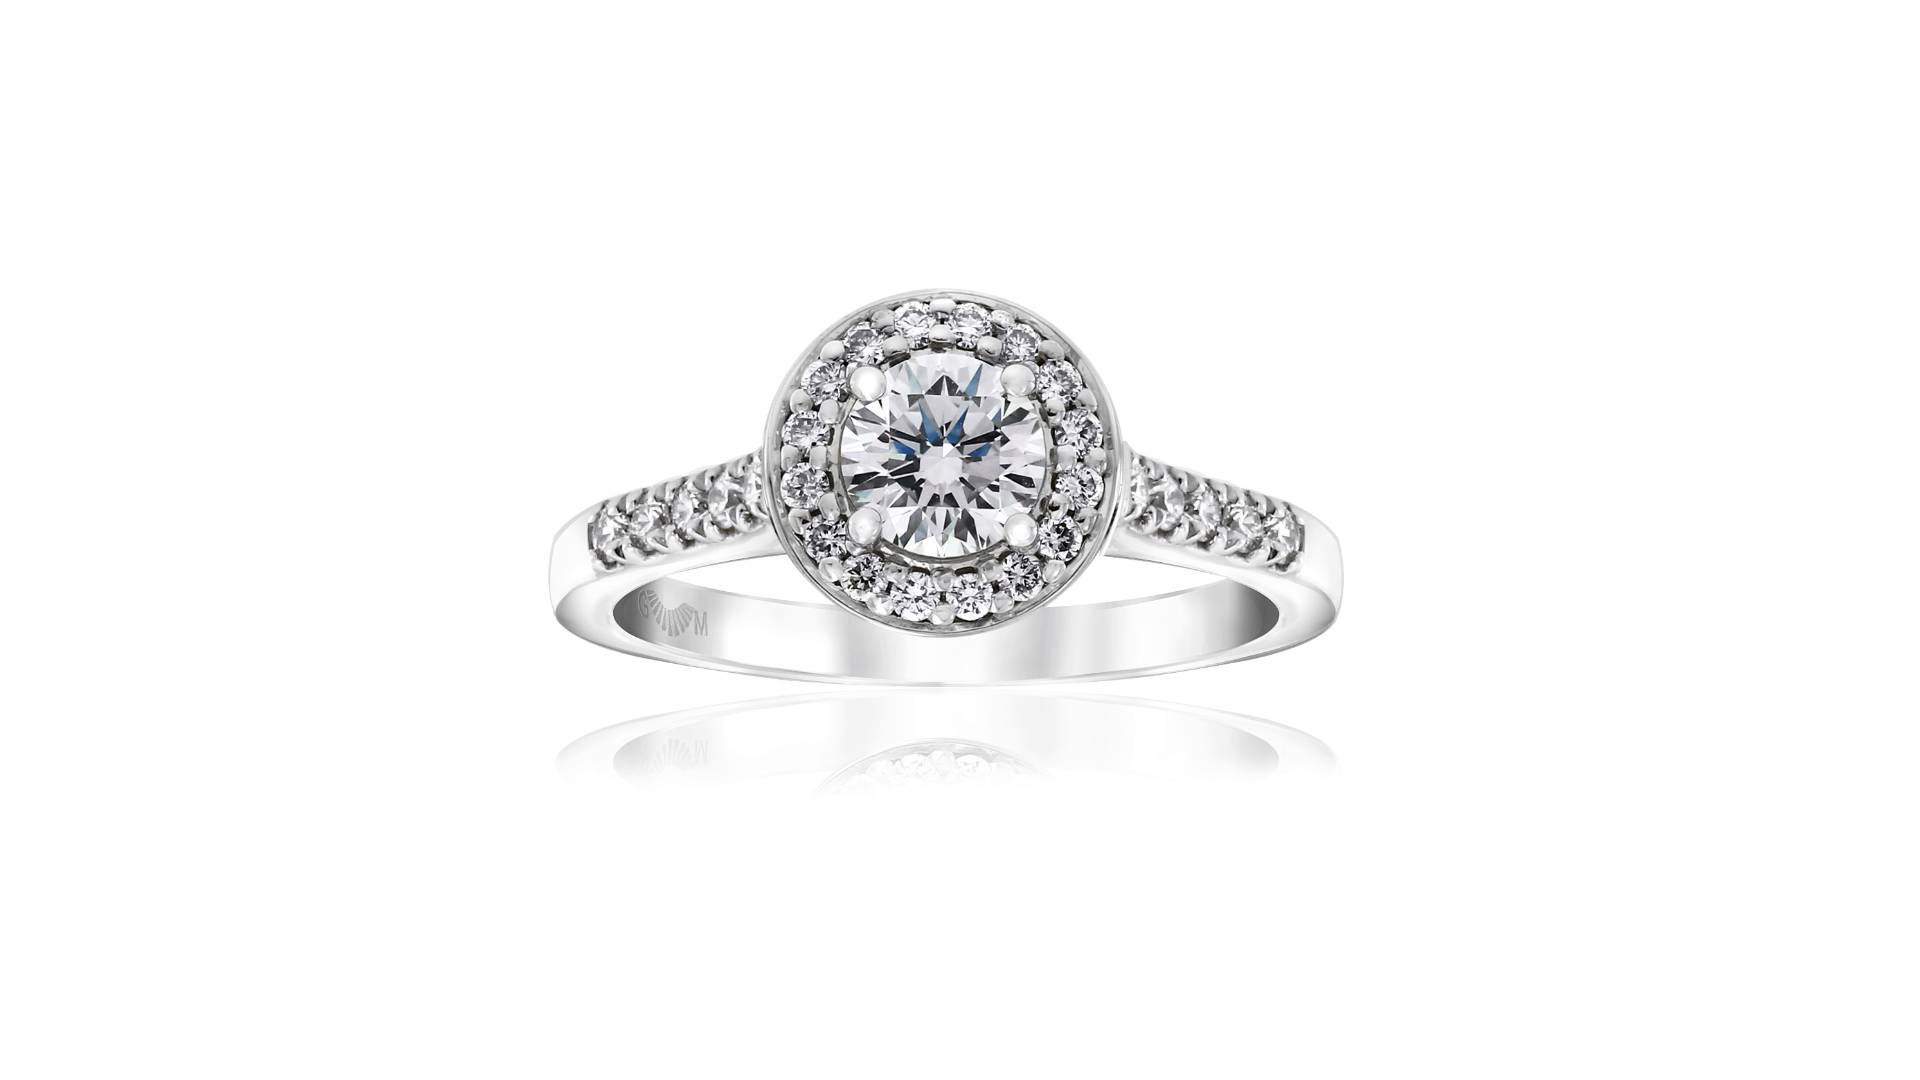 engagementringsre cfm diamond mdc rings diamonds gold from ring nyc princess in white lotus lily engagement